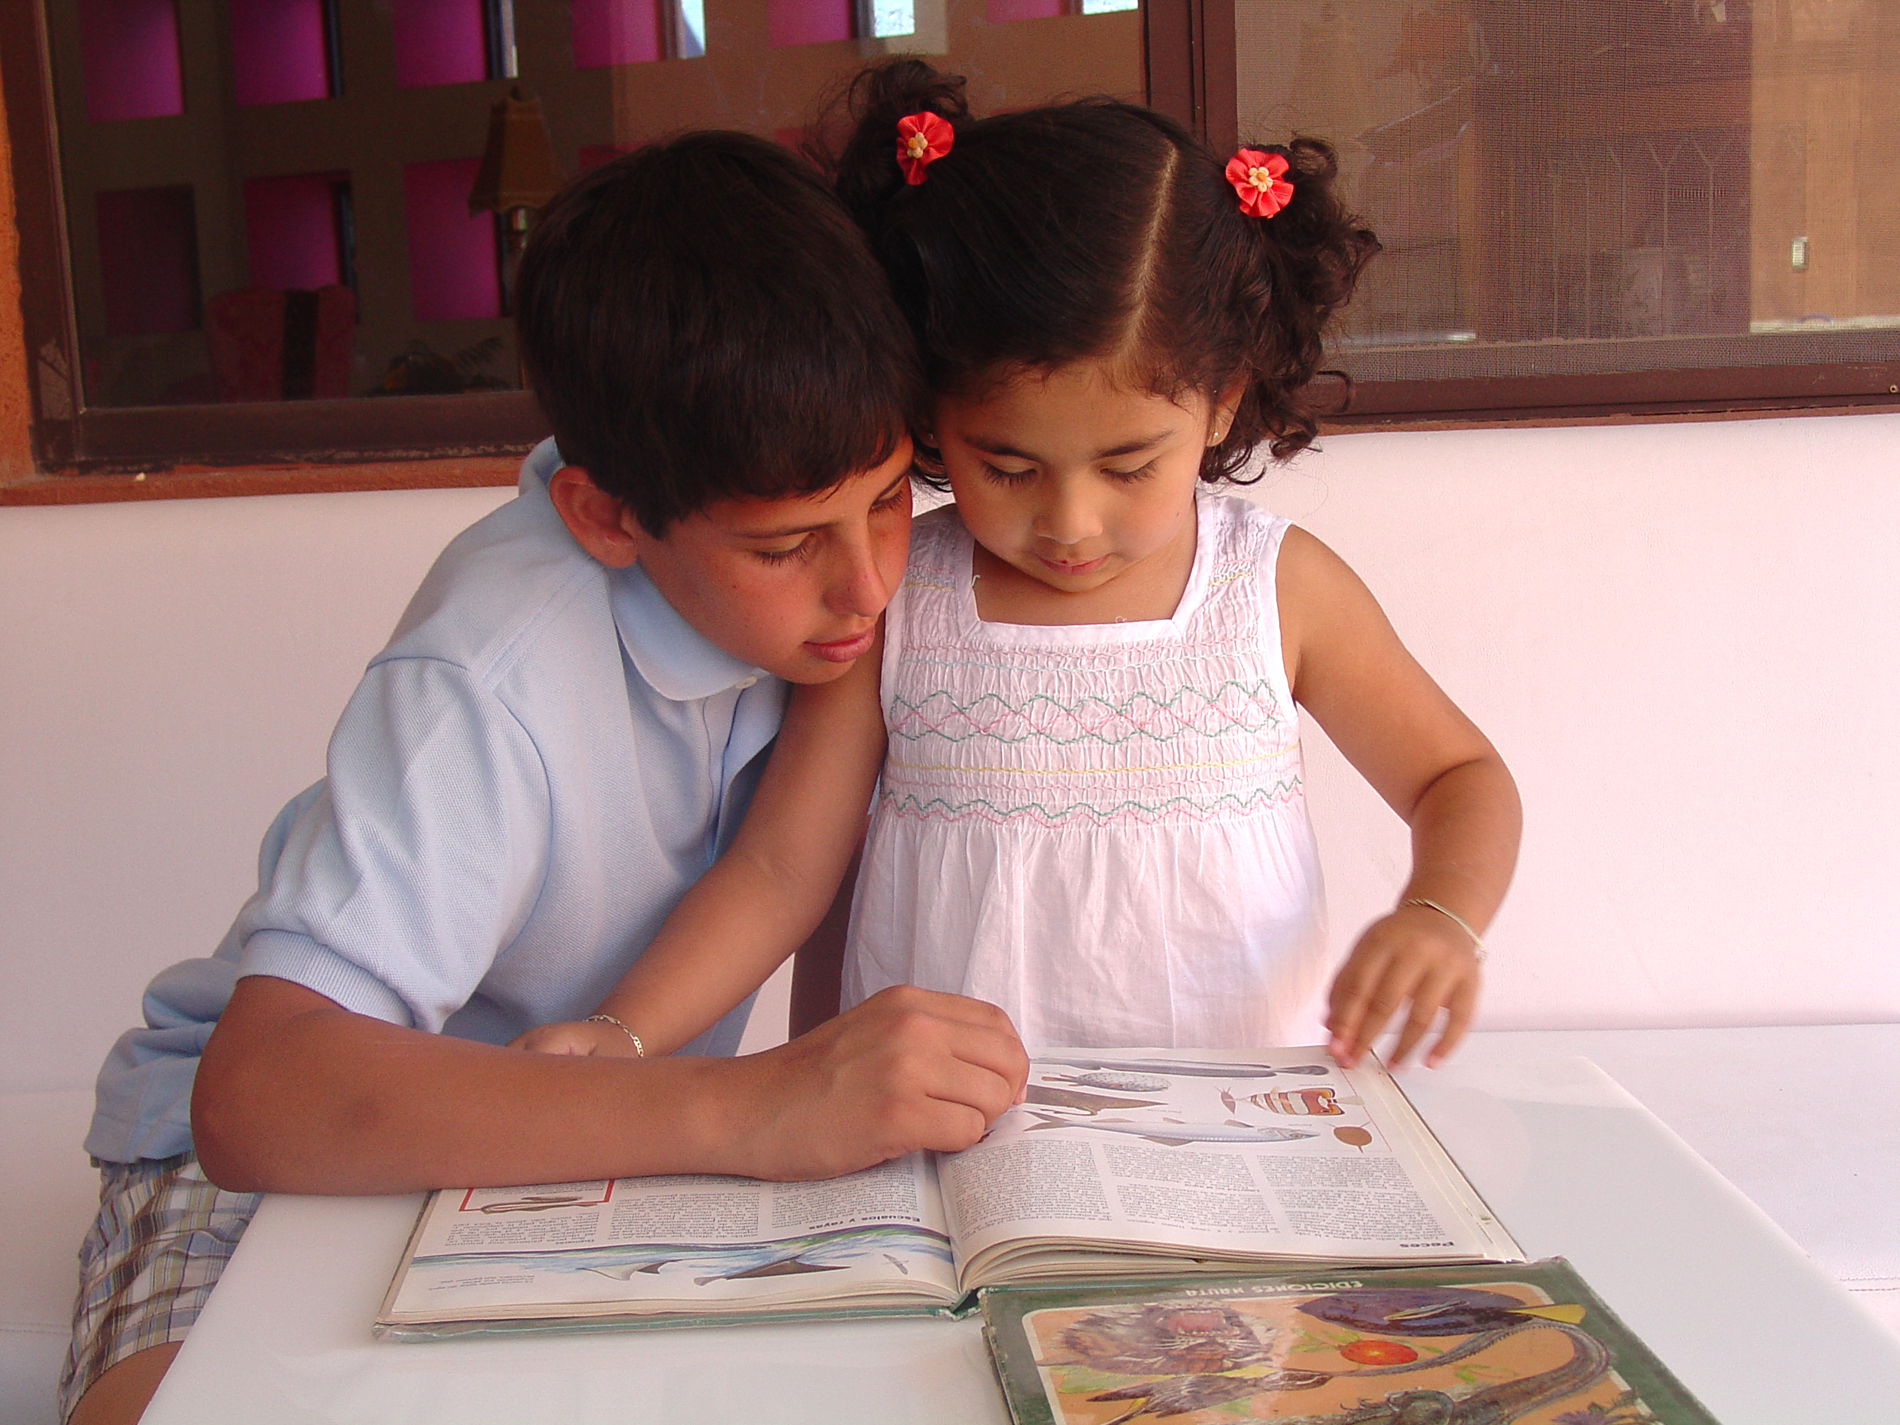 A boy showing a girl something in a book.